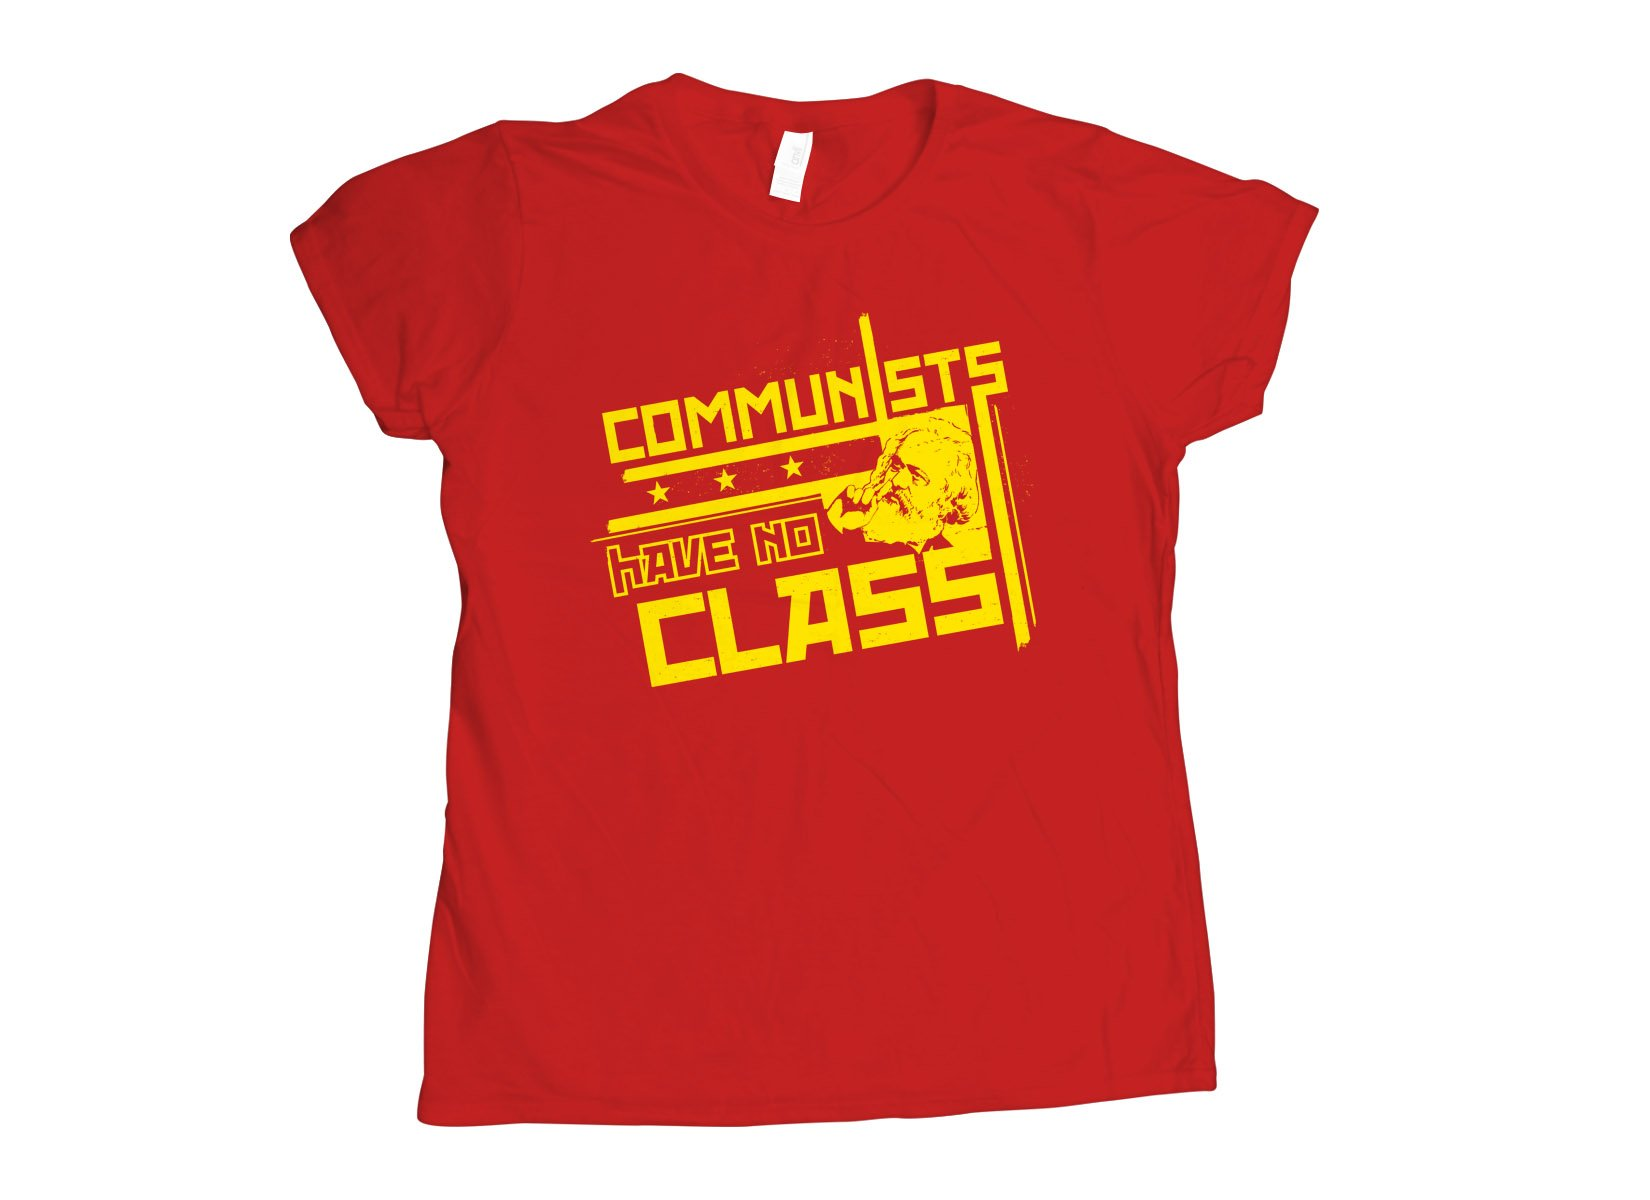 Communists Have No Class on Womens T-Shirt